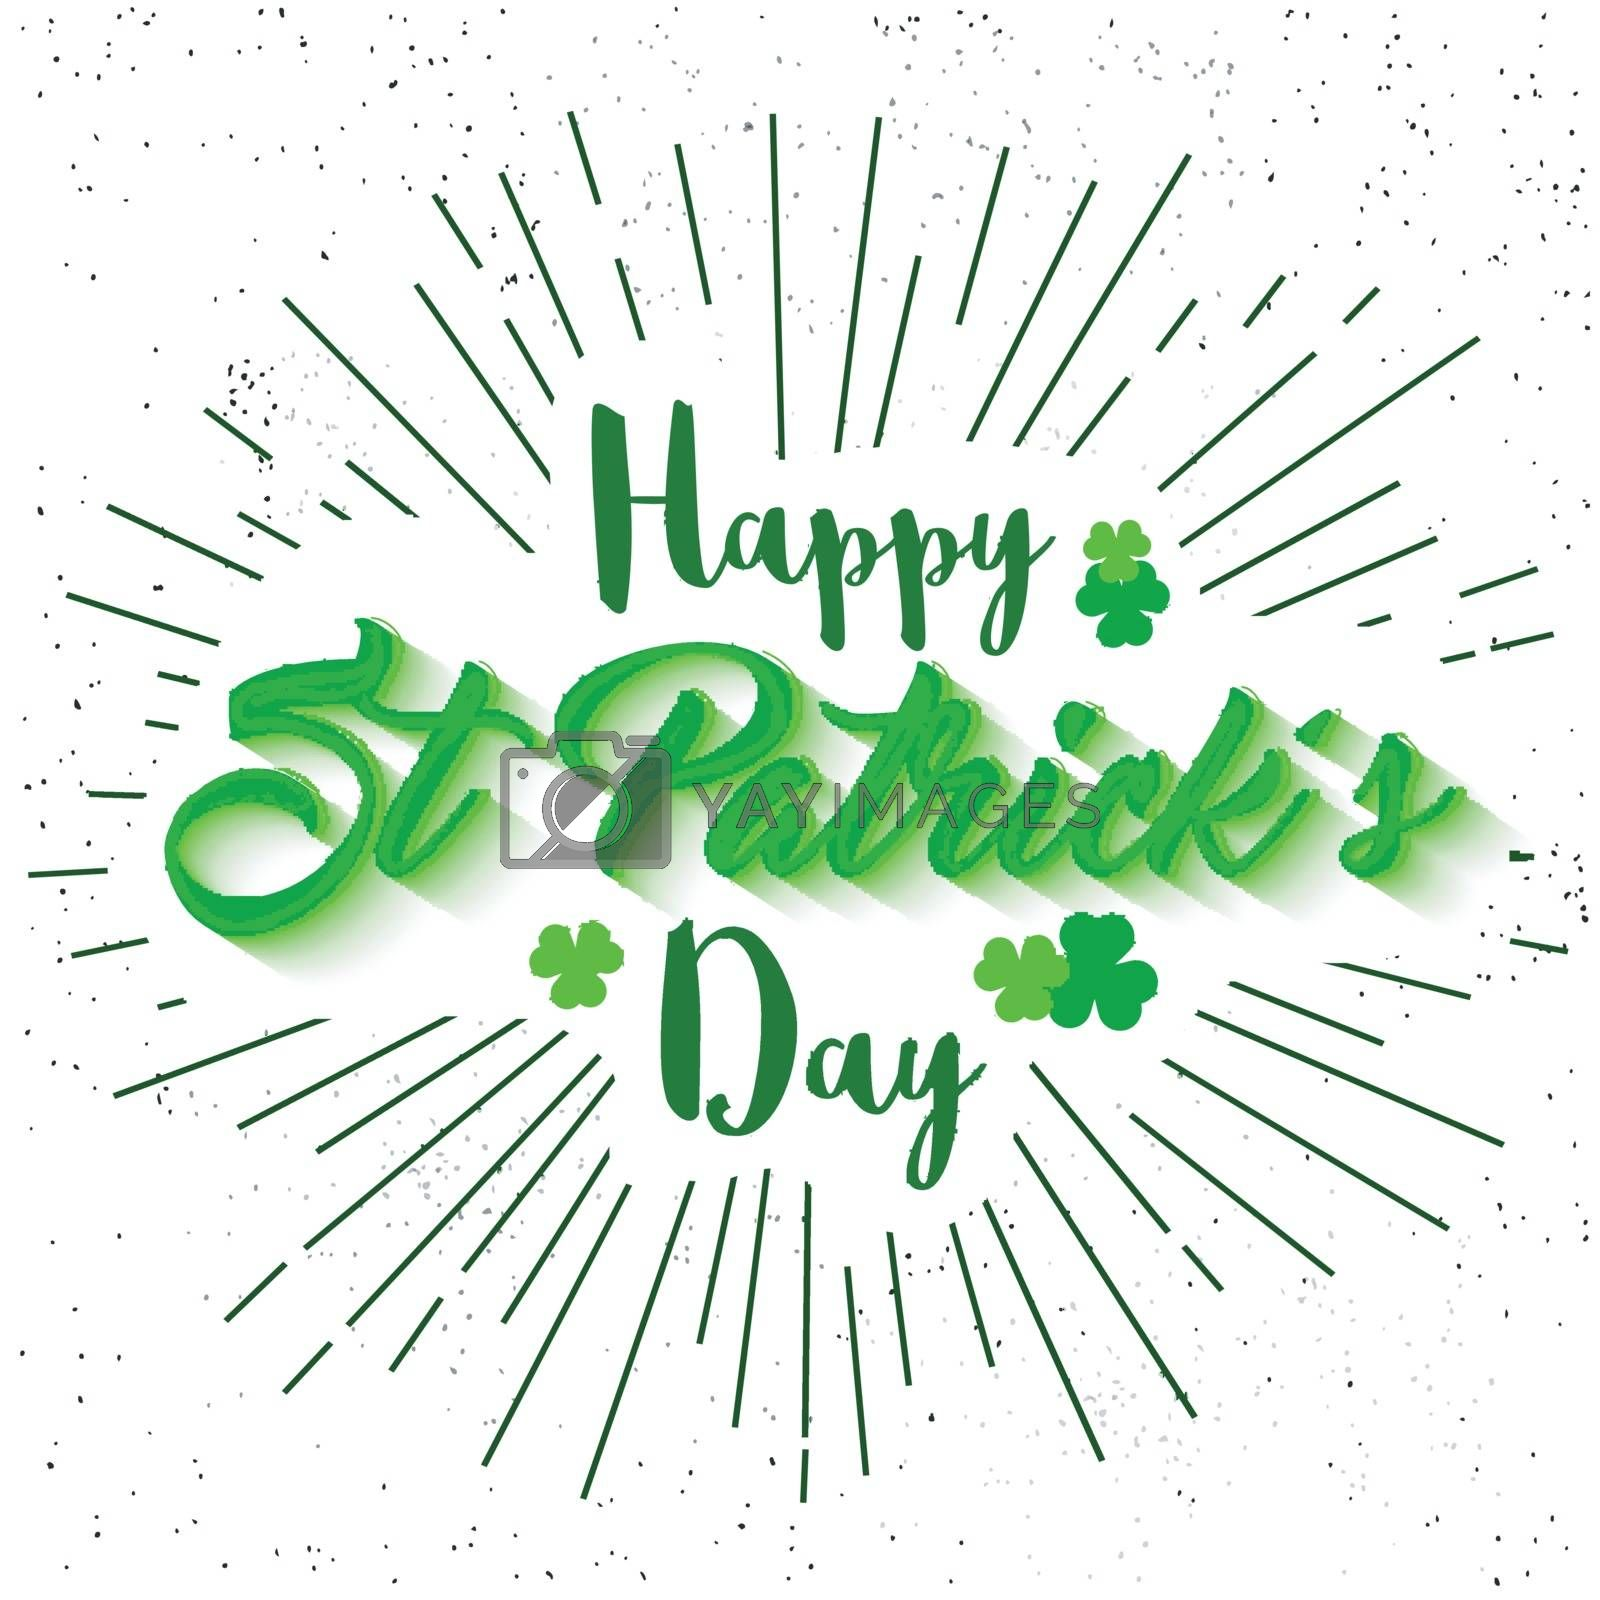 Happy St. Patrick's Day celebration typographical abstract background.